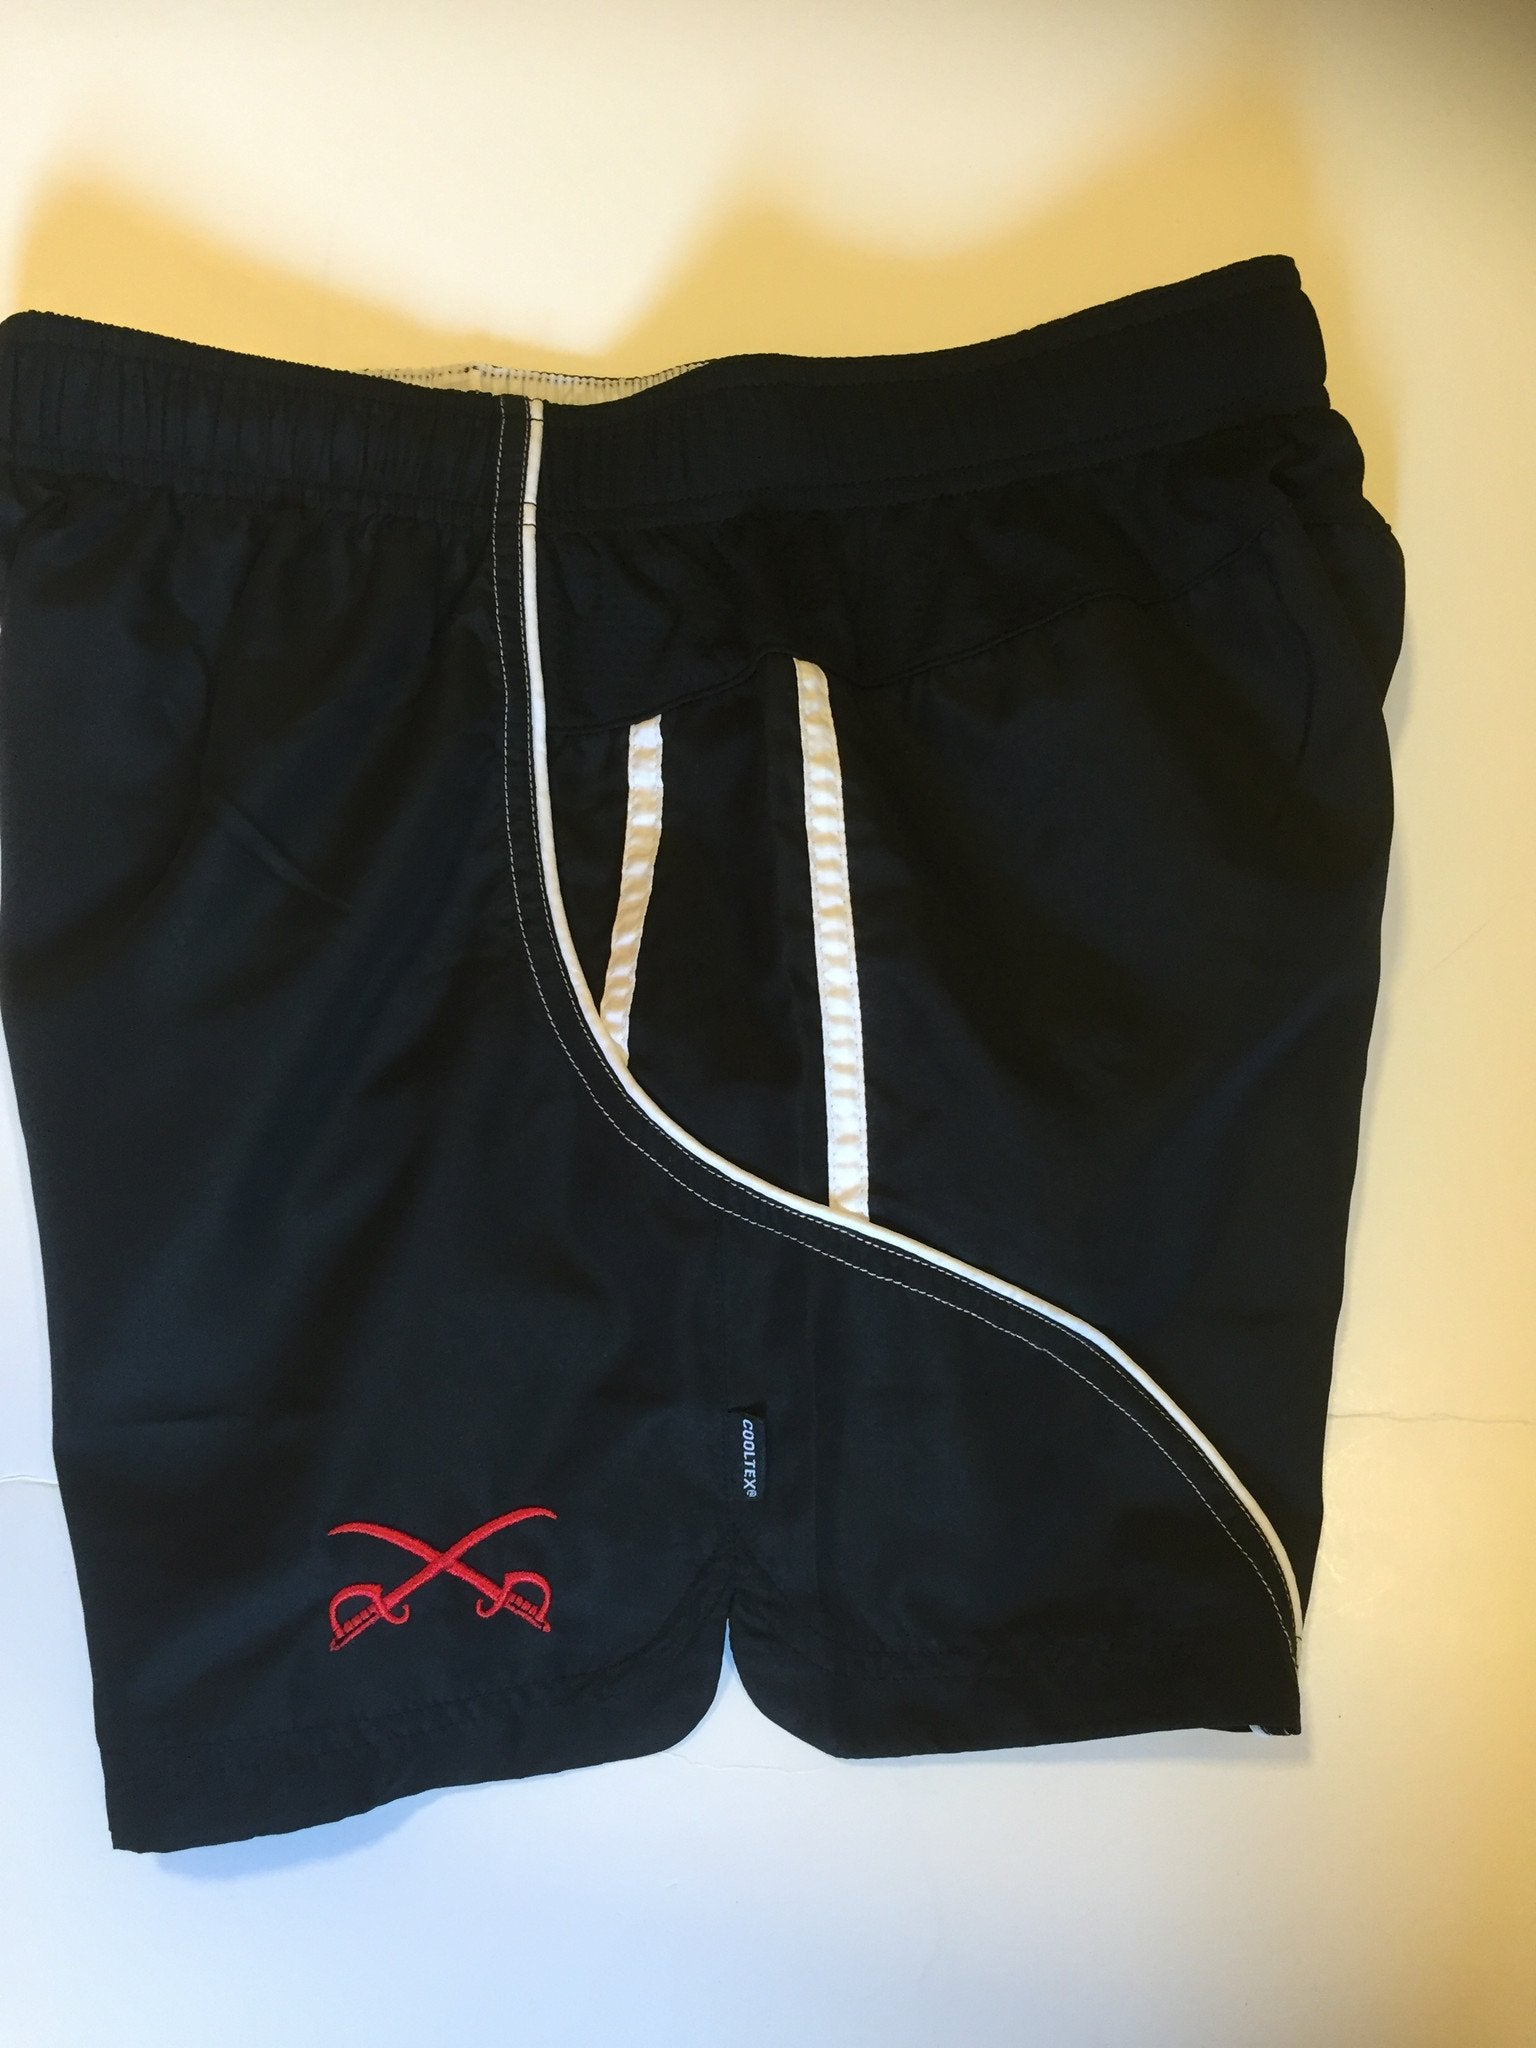 AAPTI Physical Training Instructor (PTI) Racer Running Shorts 1508 - C1000 Stitches